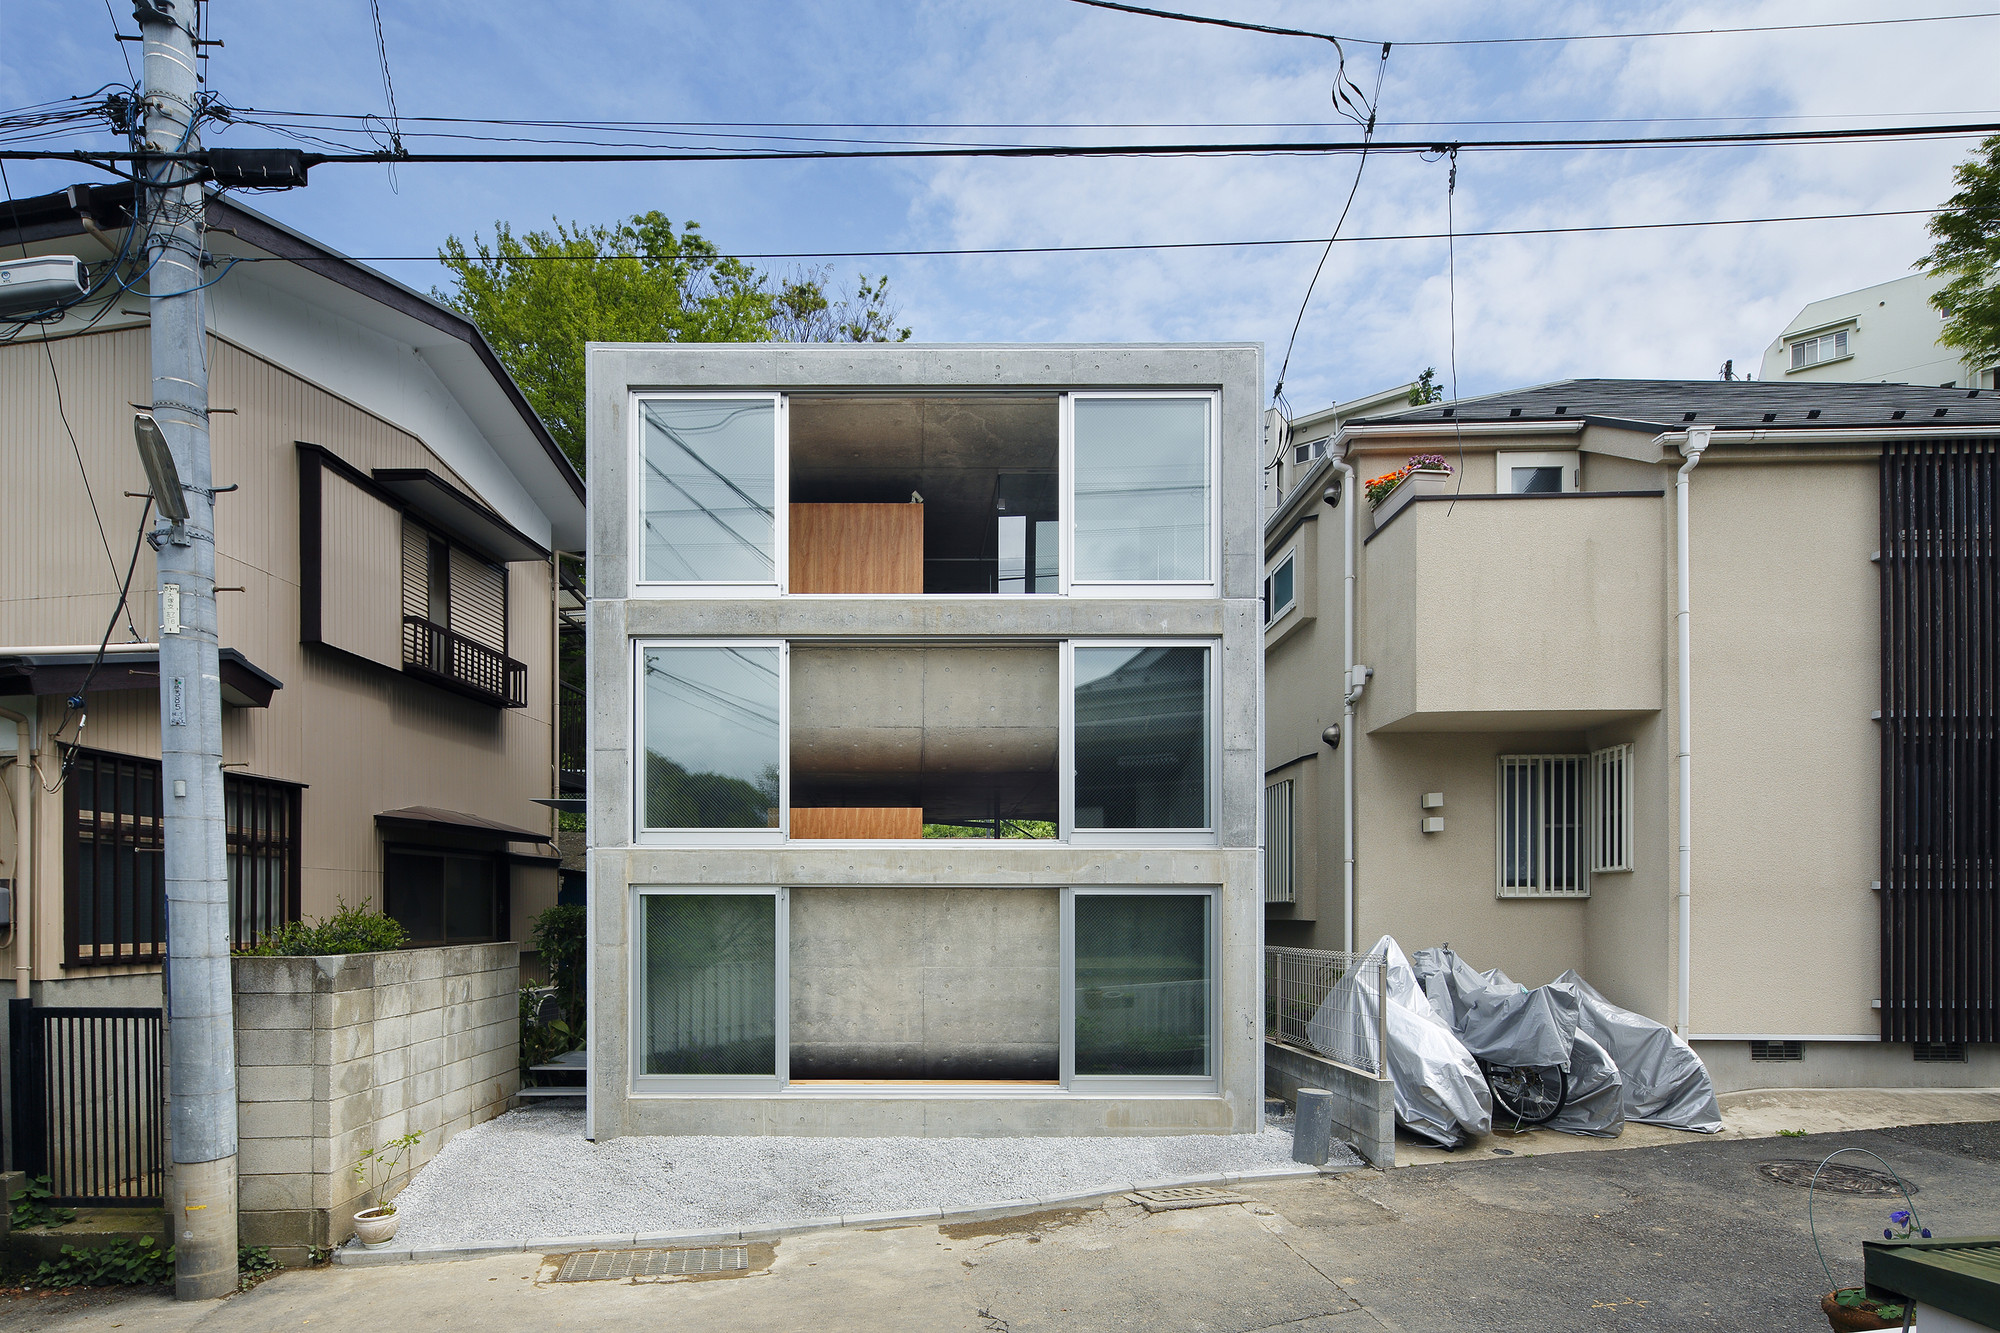 Gallery of house in byoubugaura takeshi hosaka 5 for Architecture japonaise